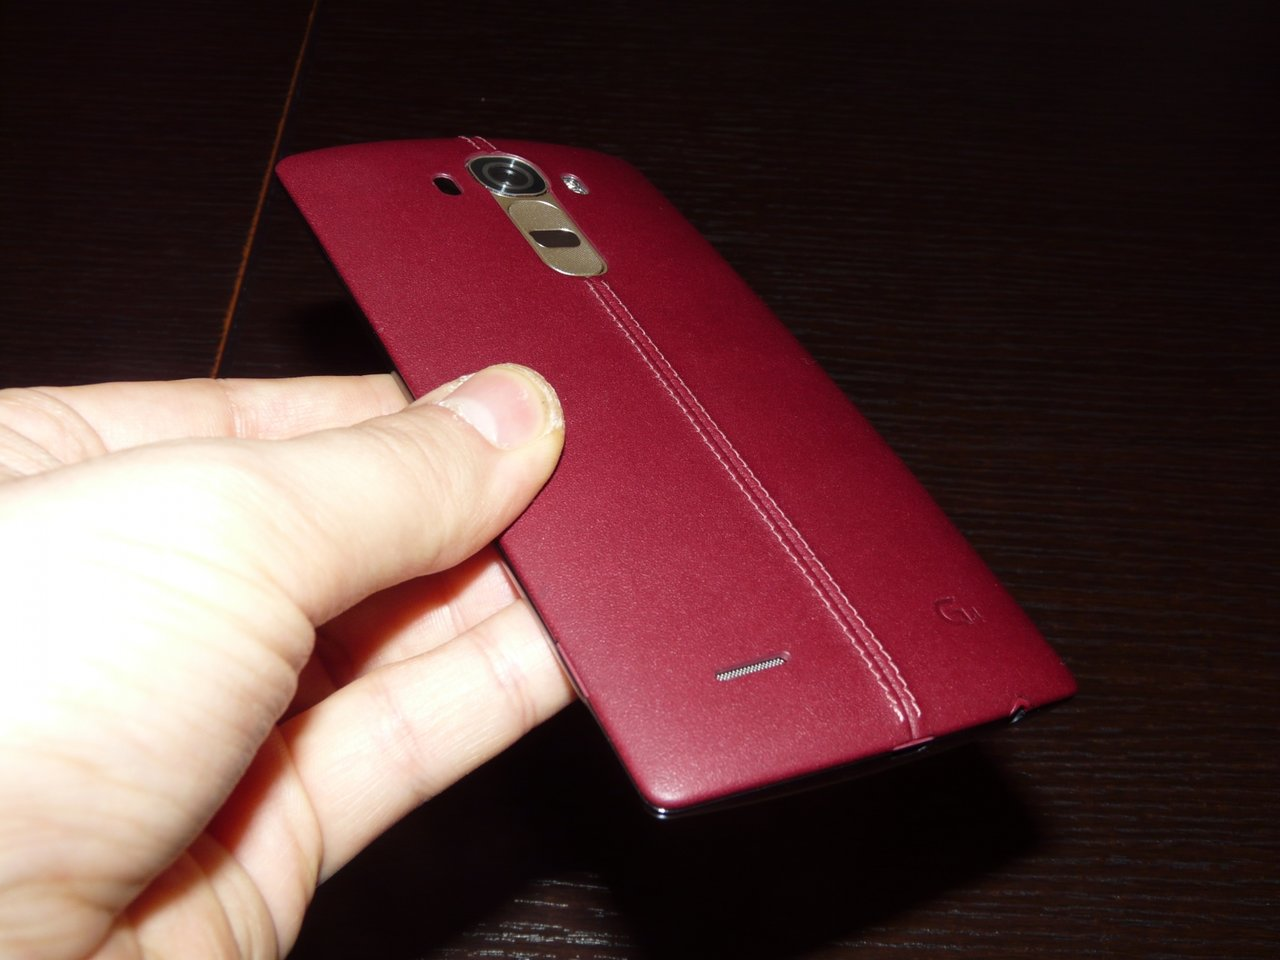 Canada LG G4 Launch Today, Available through Most Carriers Including Rogers, Wind Mobile, Videotron, Bell, and More